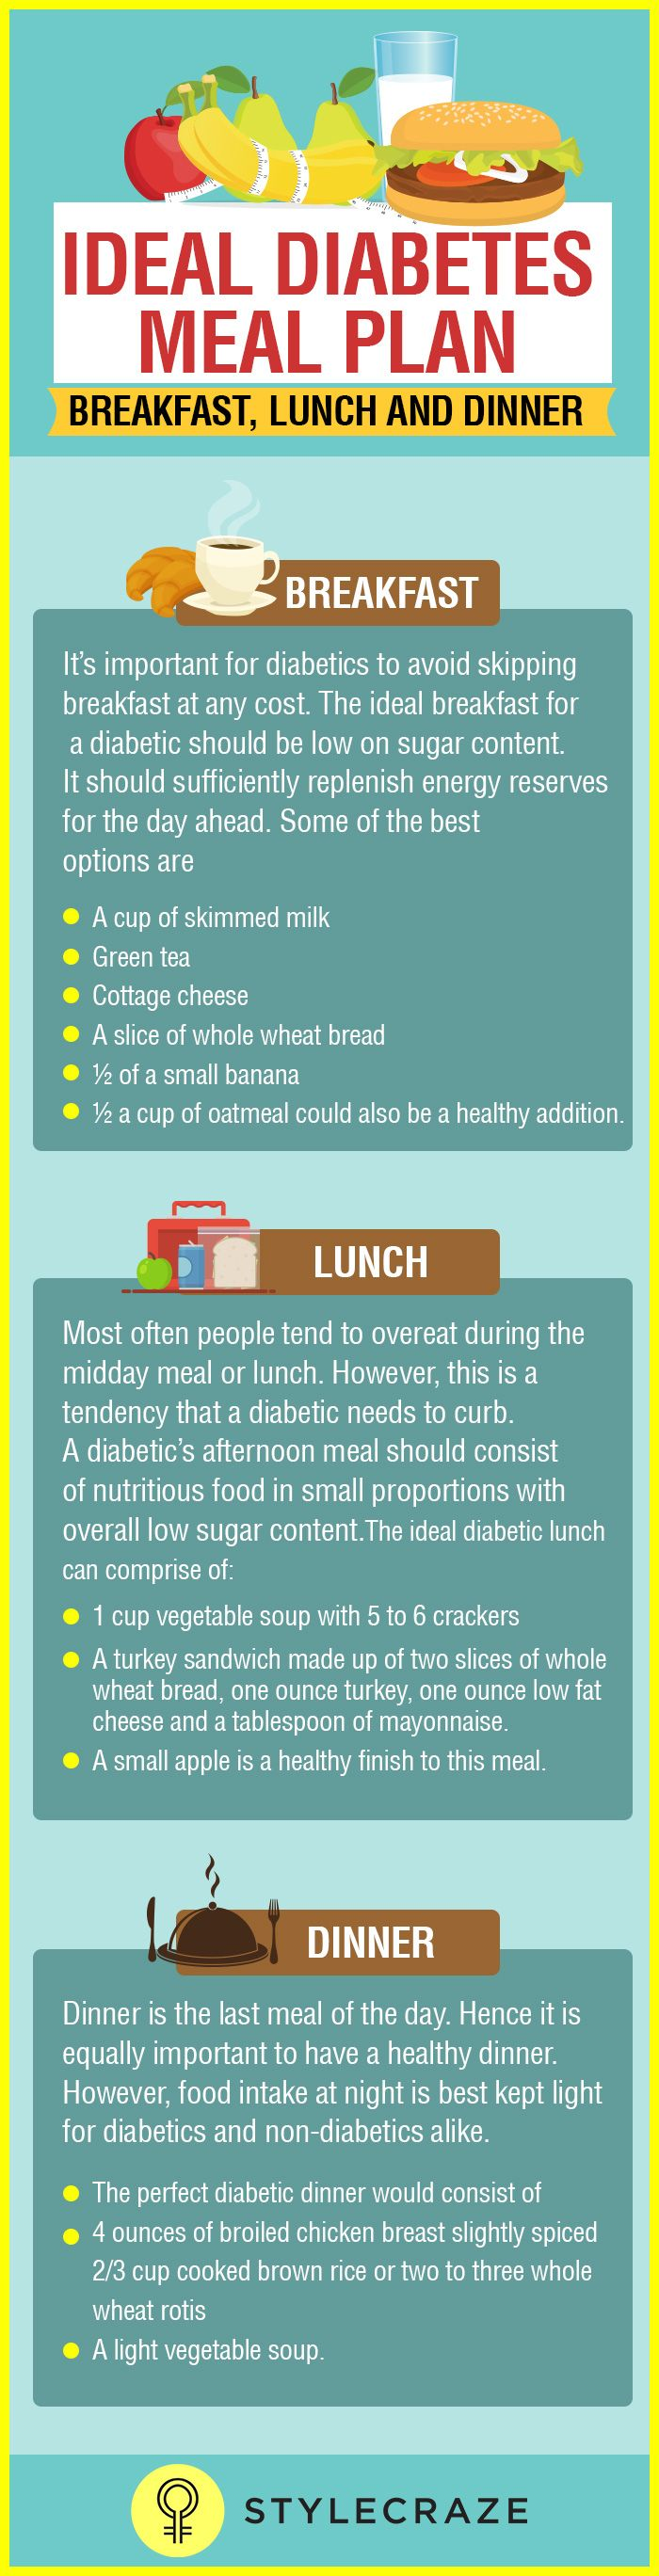 Best 25+ Diabetic meal plan ideas on Pinterest | Diabetic menu ...